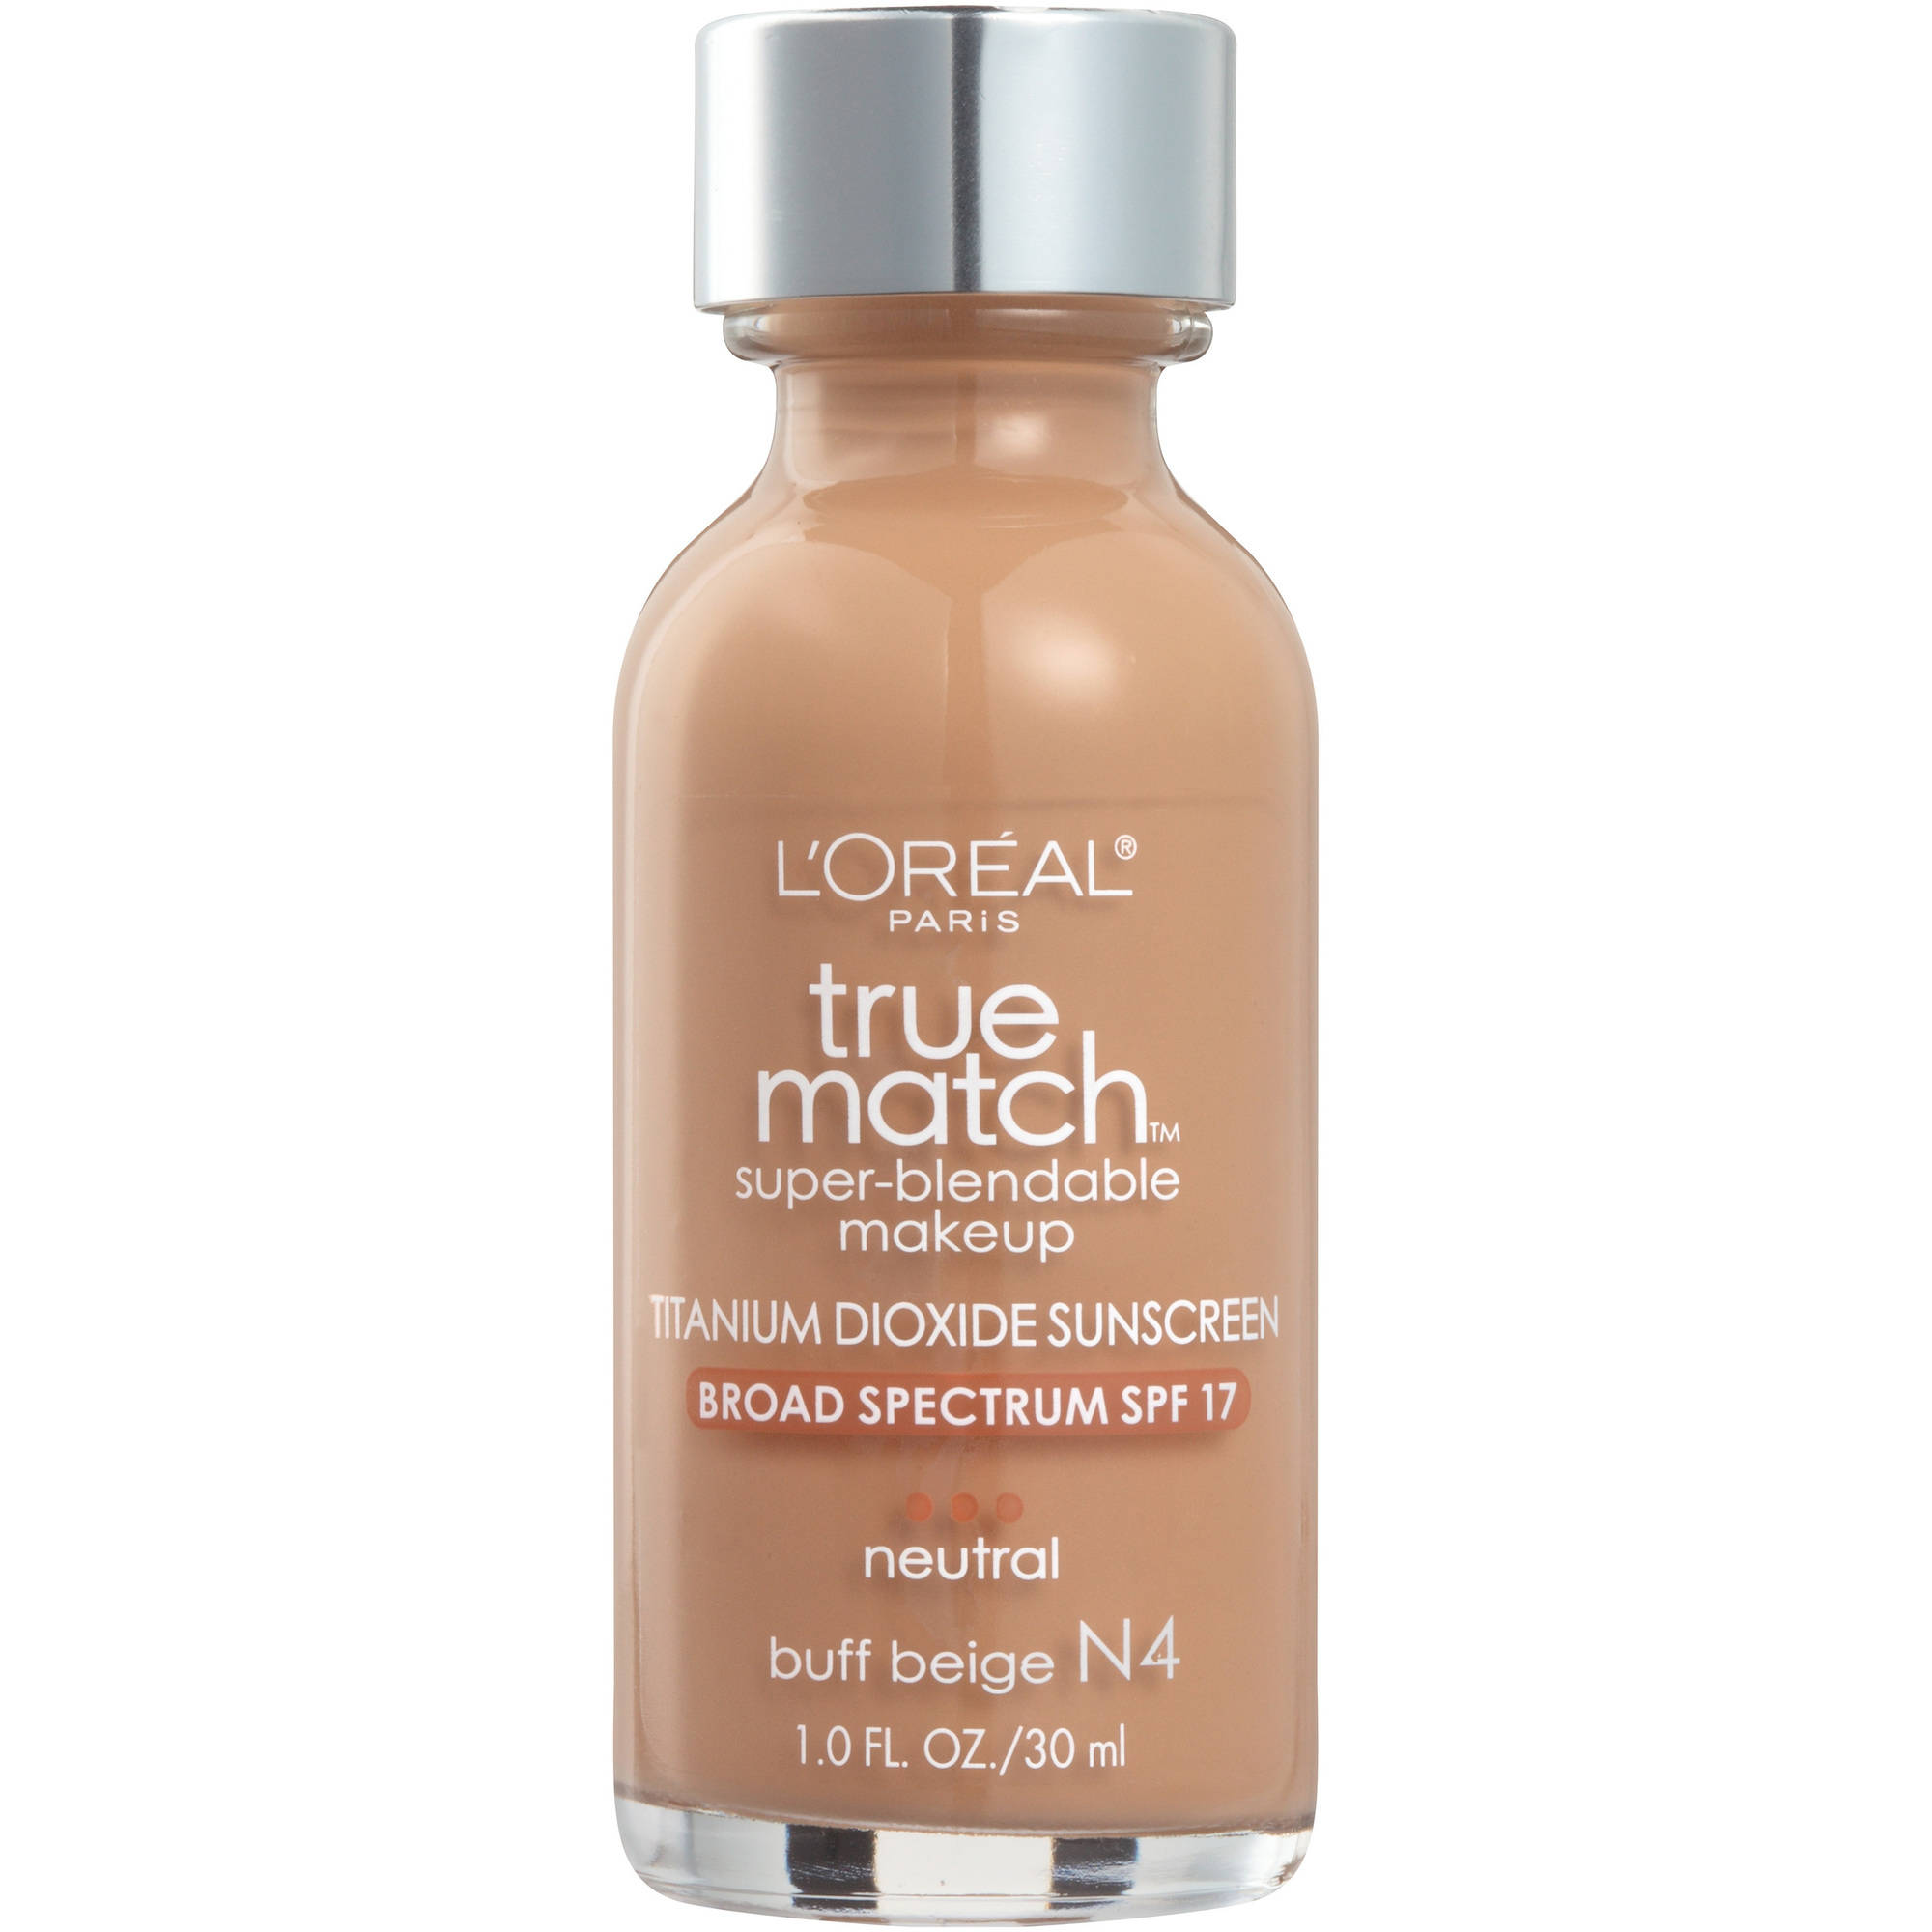 L'Oreal Paris True Match Super Blendable Makeup Foundation, N4 Buff Beige, 1.0 fl oz - Walmart.com